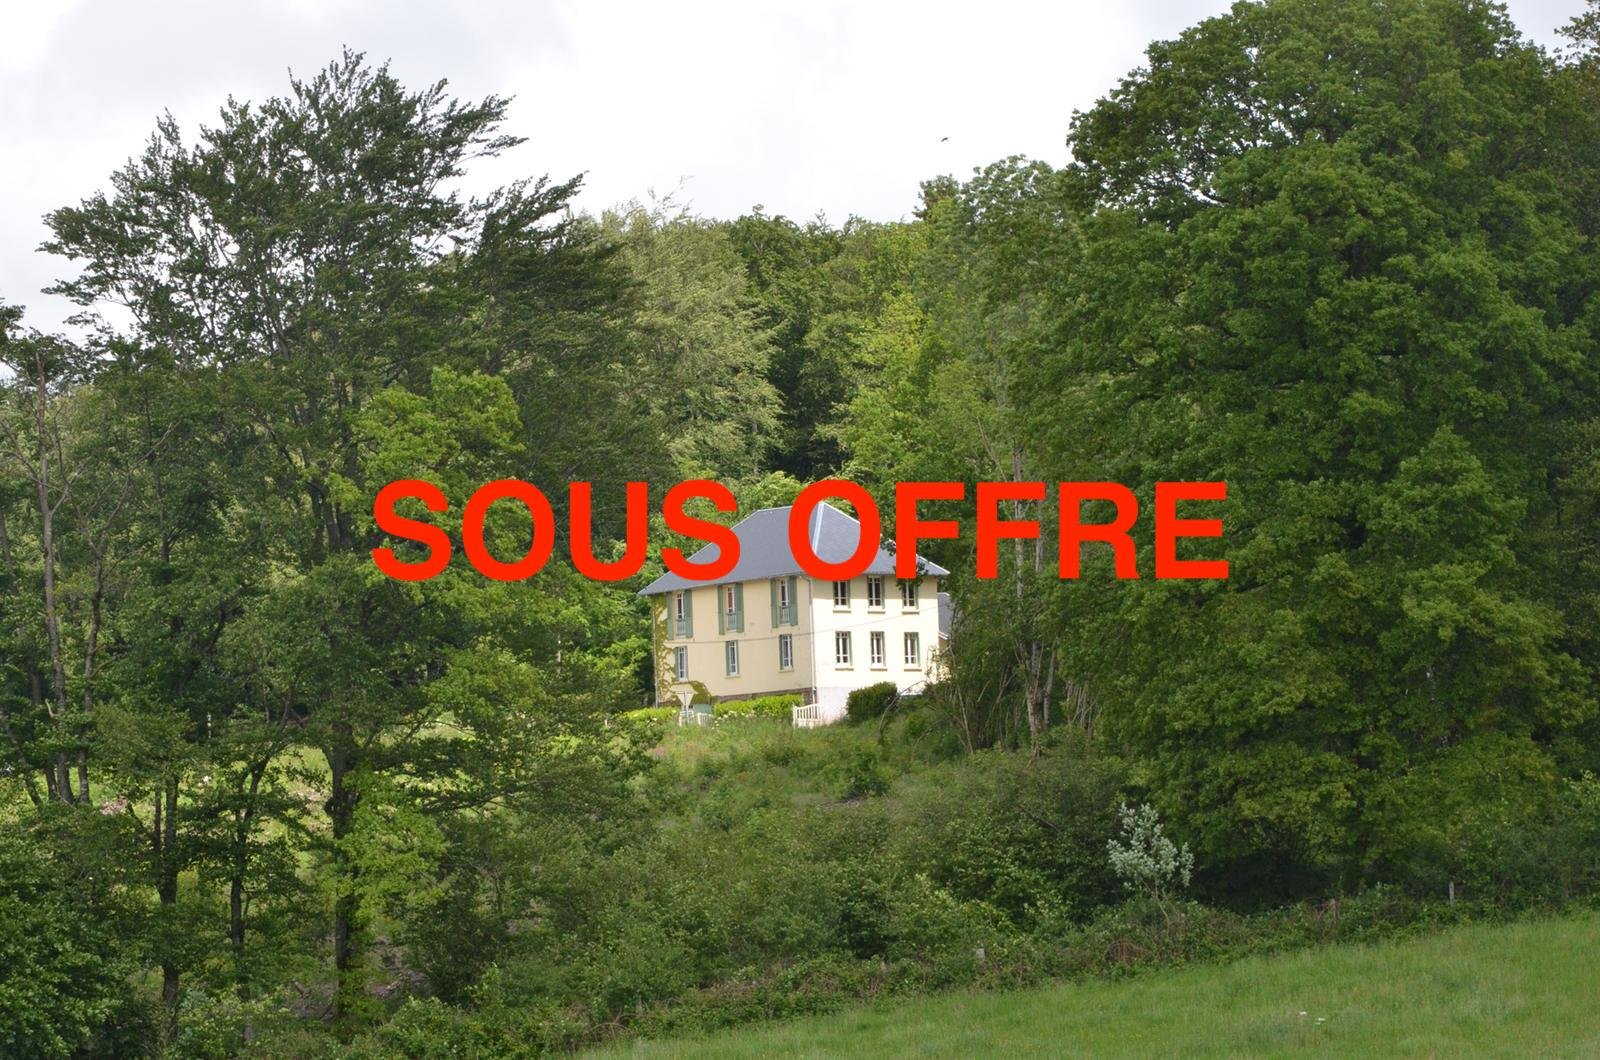 Chambres d'Hôtes with a lot of land for sale in Burgundy